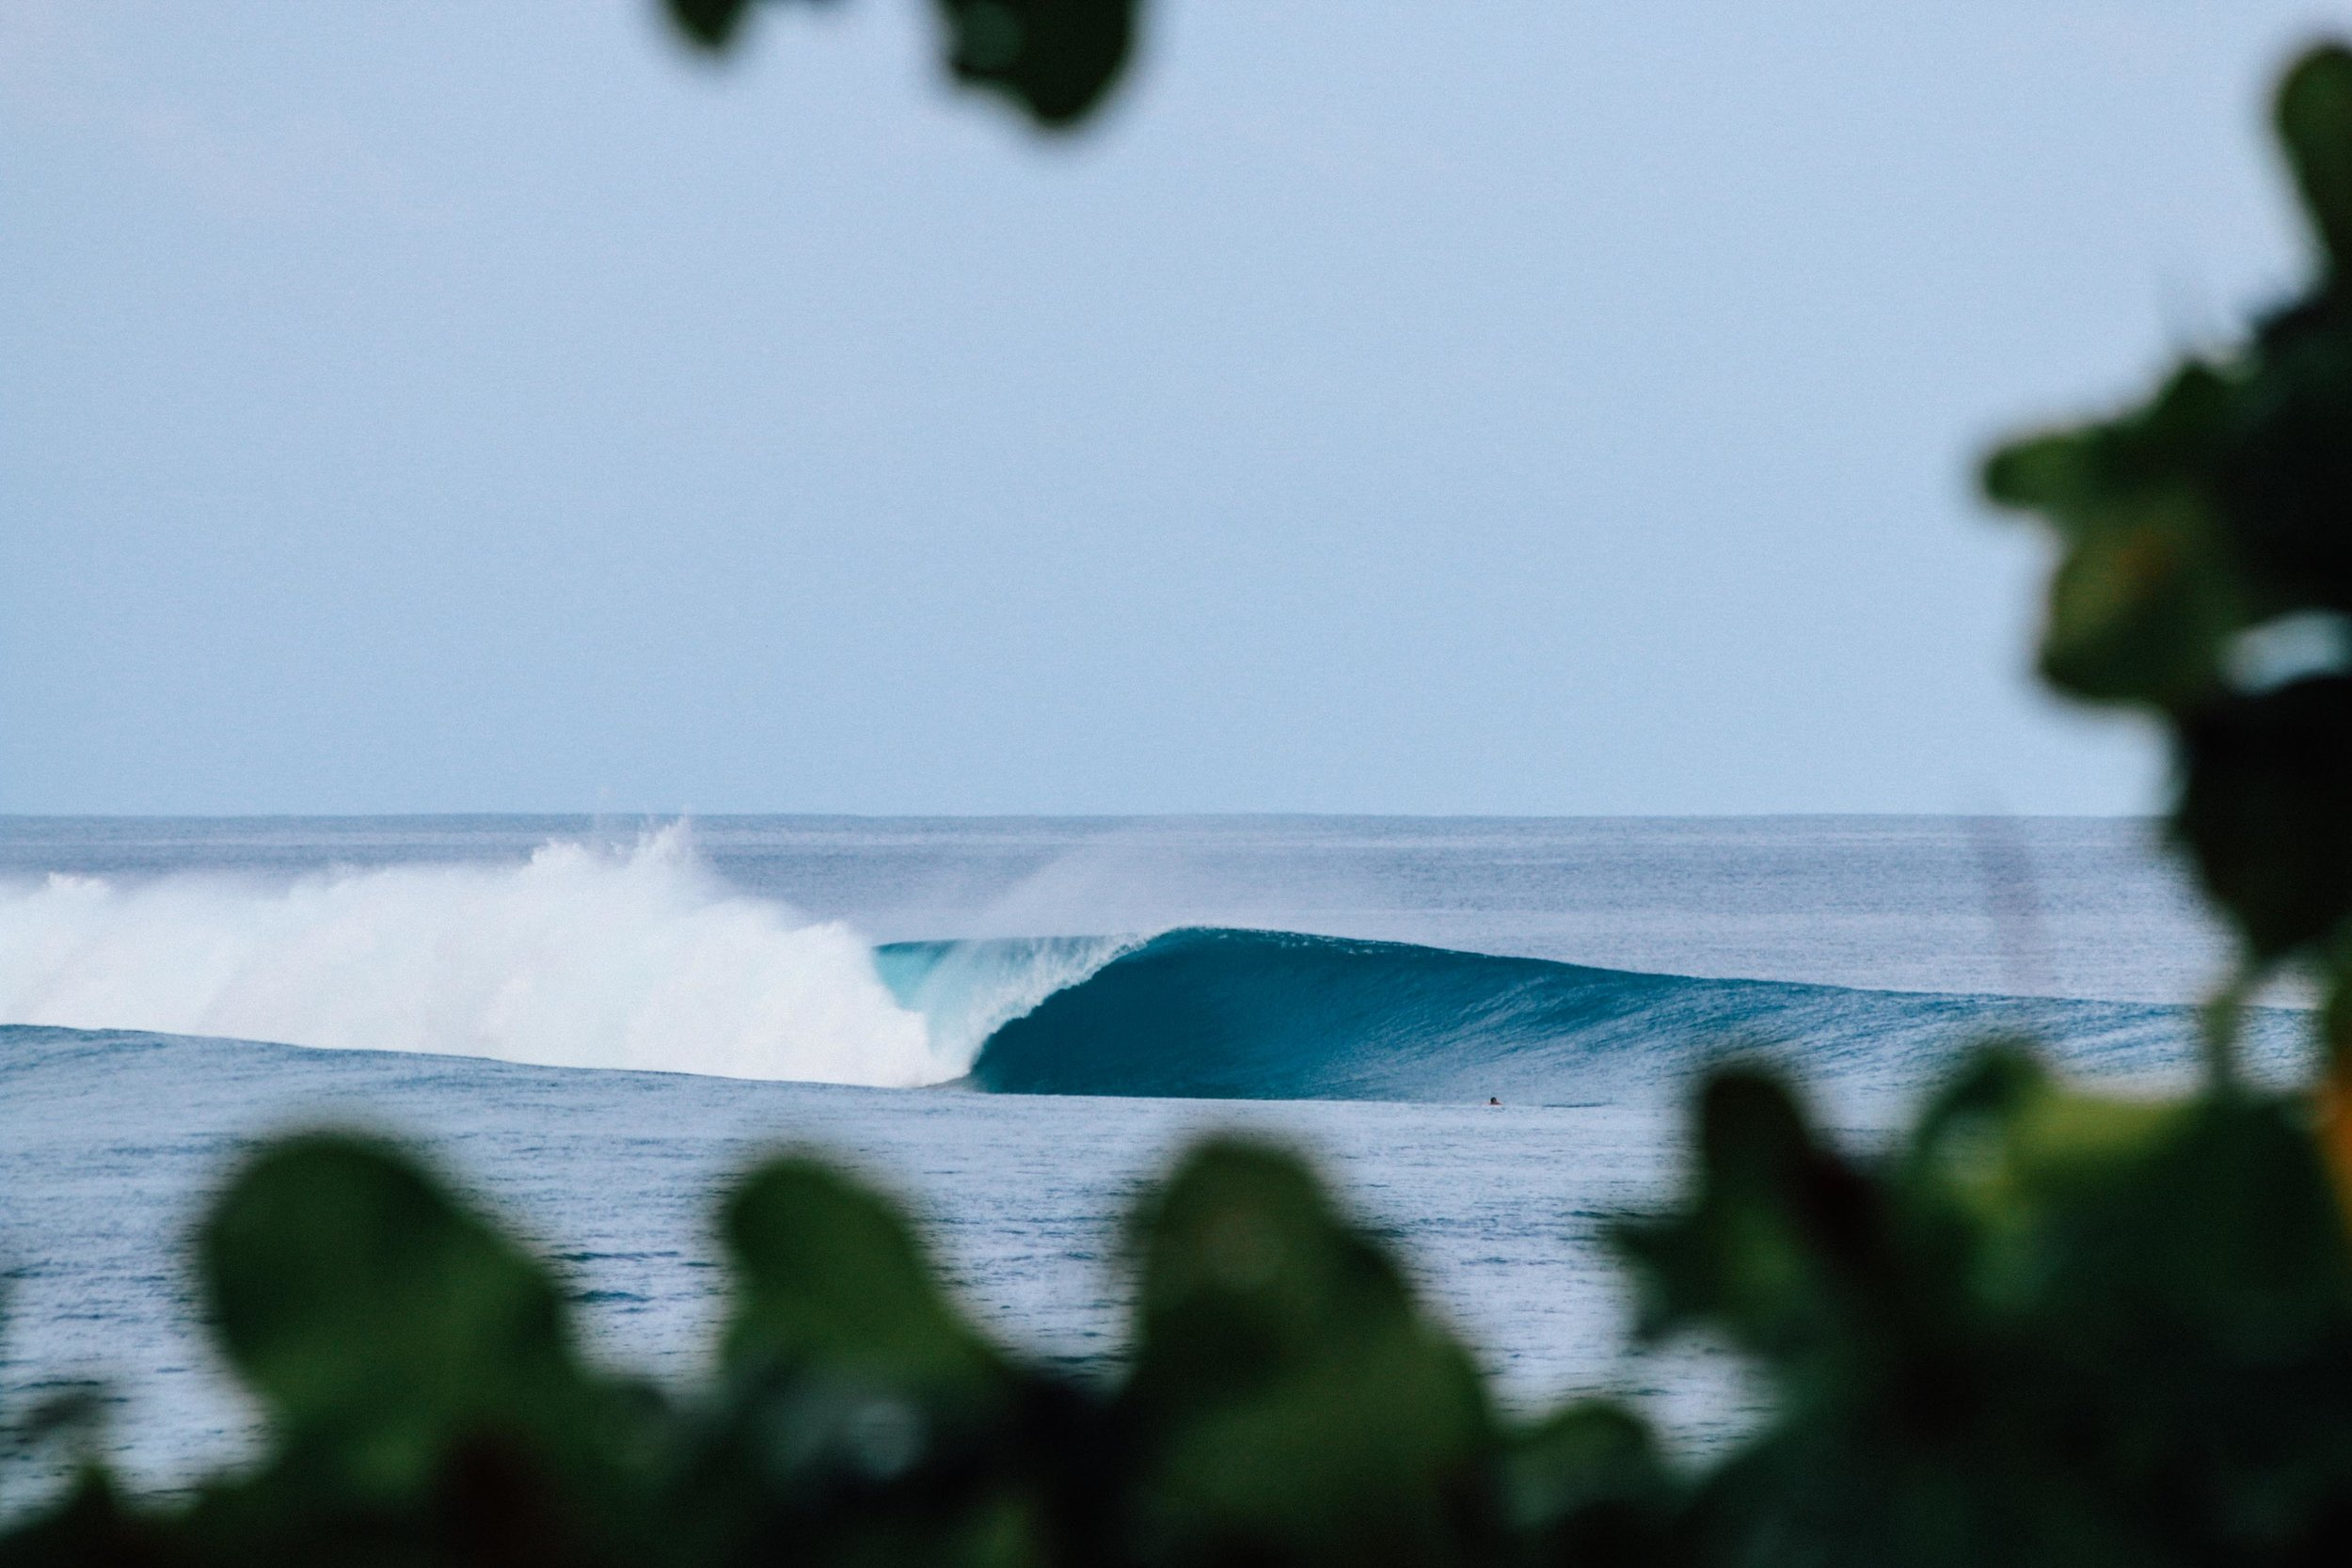 Maldives hold world-class waves.